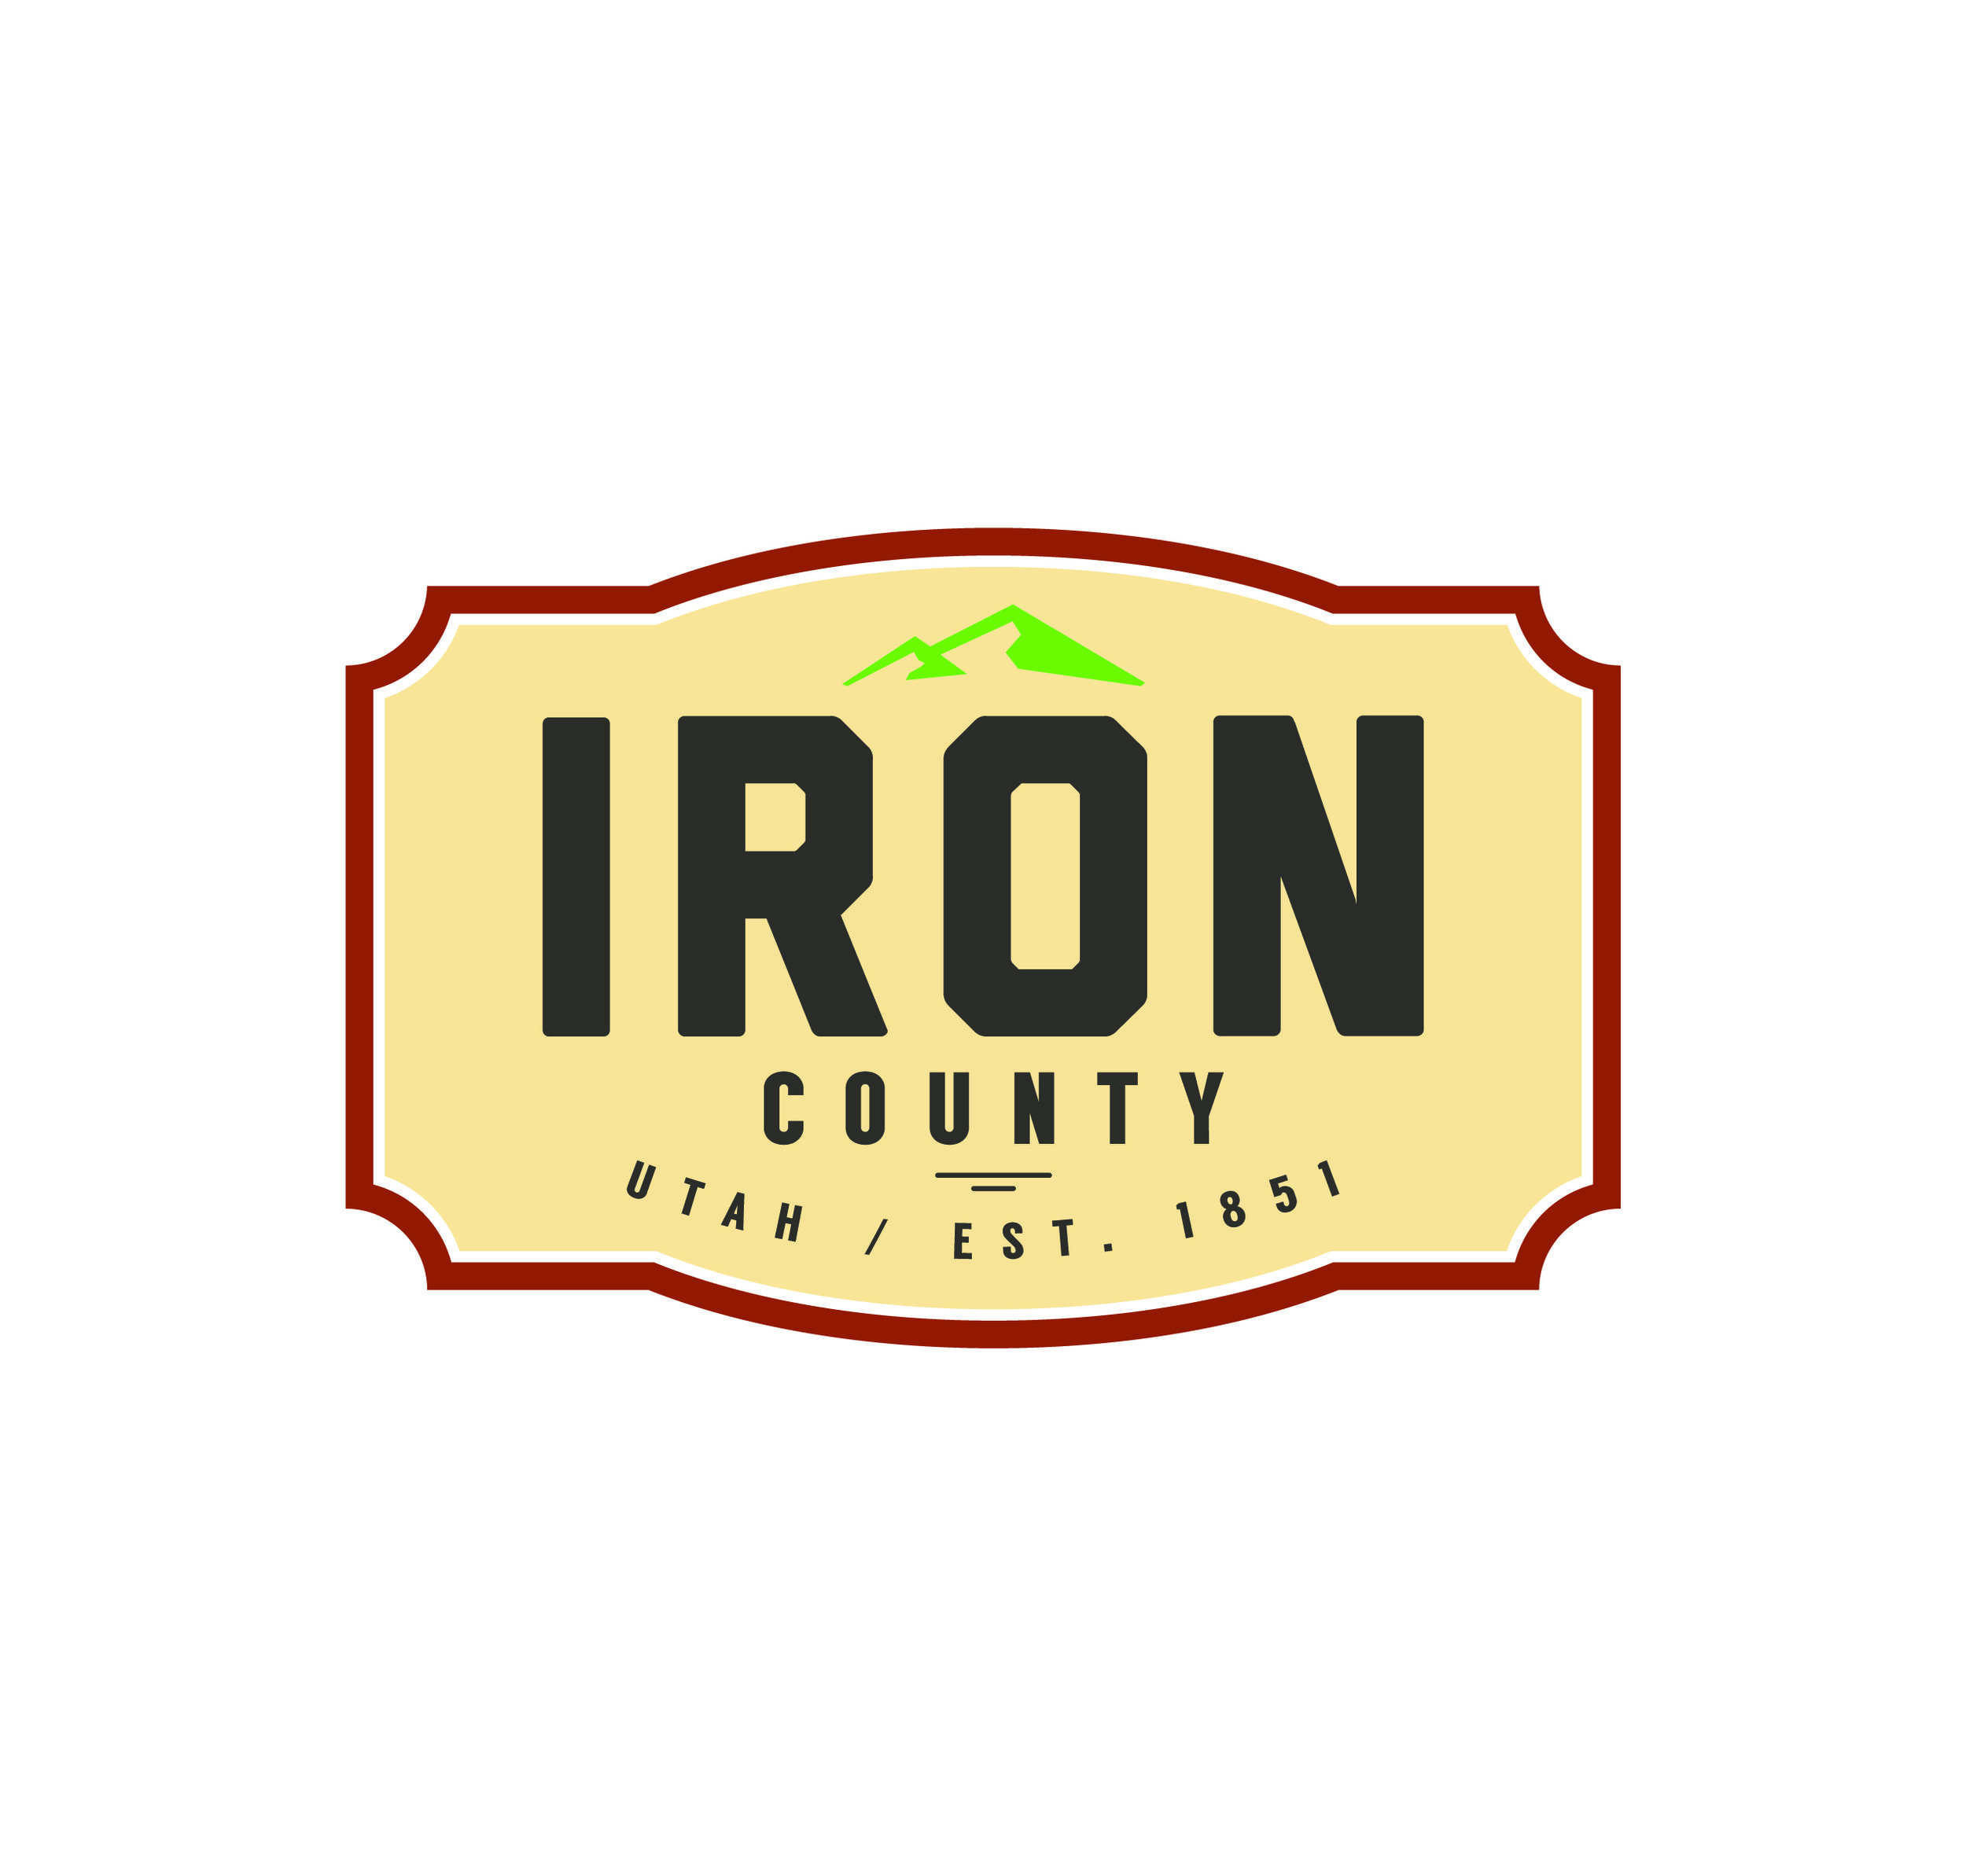 Iron County LOGO Jun.2015-01.jpg